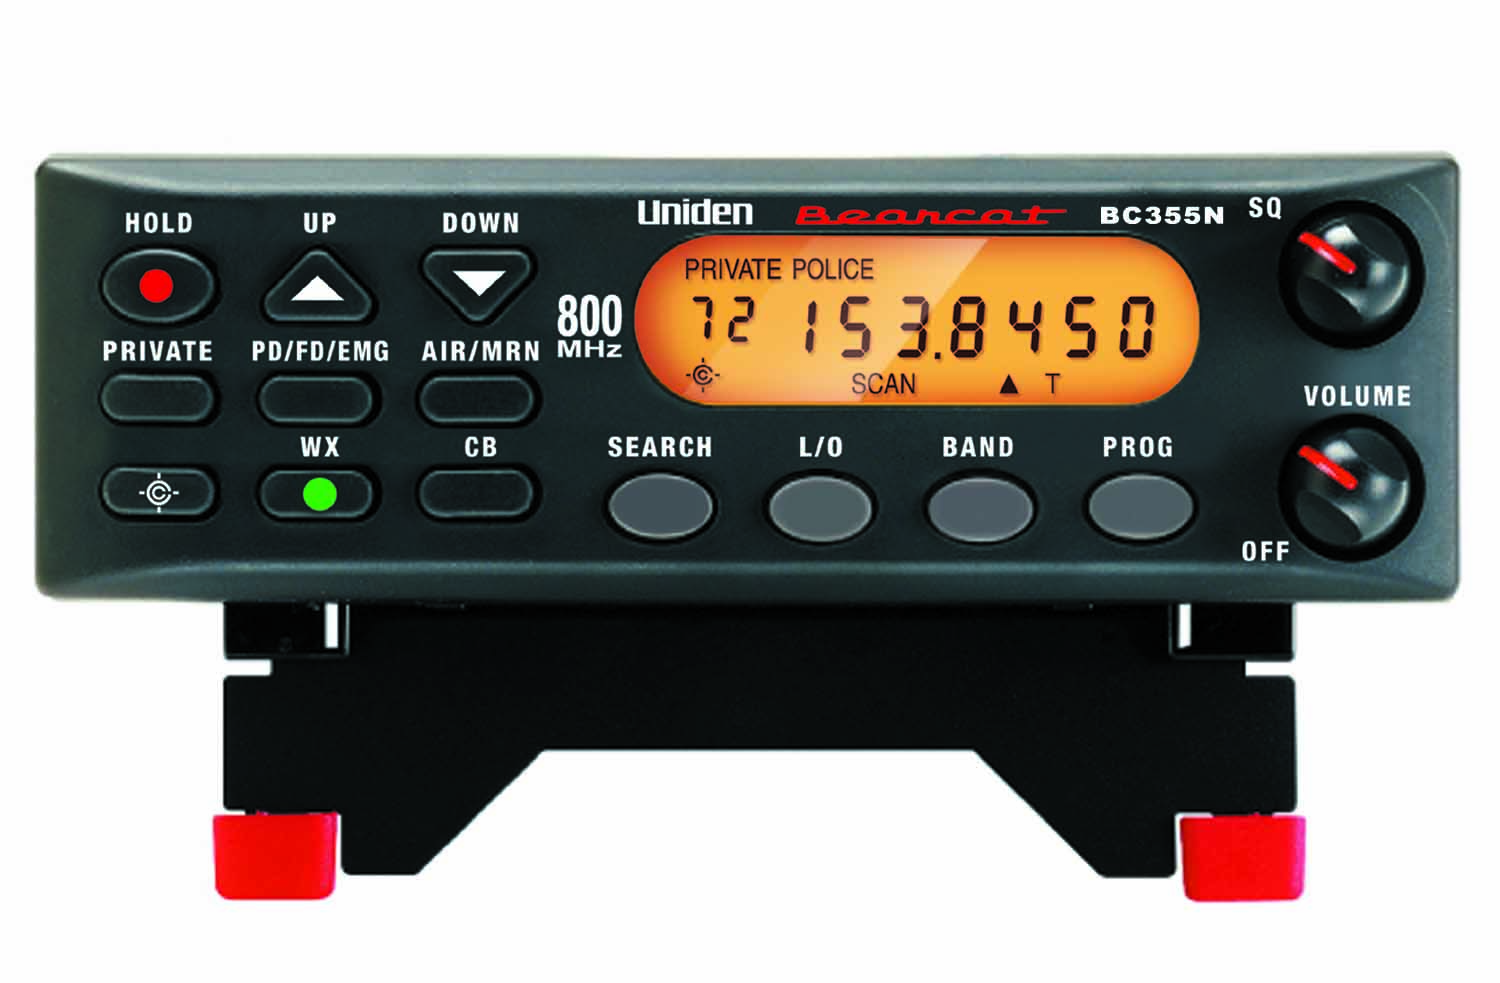 BC355N - Uniden 300 Channel Narrow Band Base Scanner